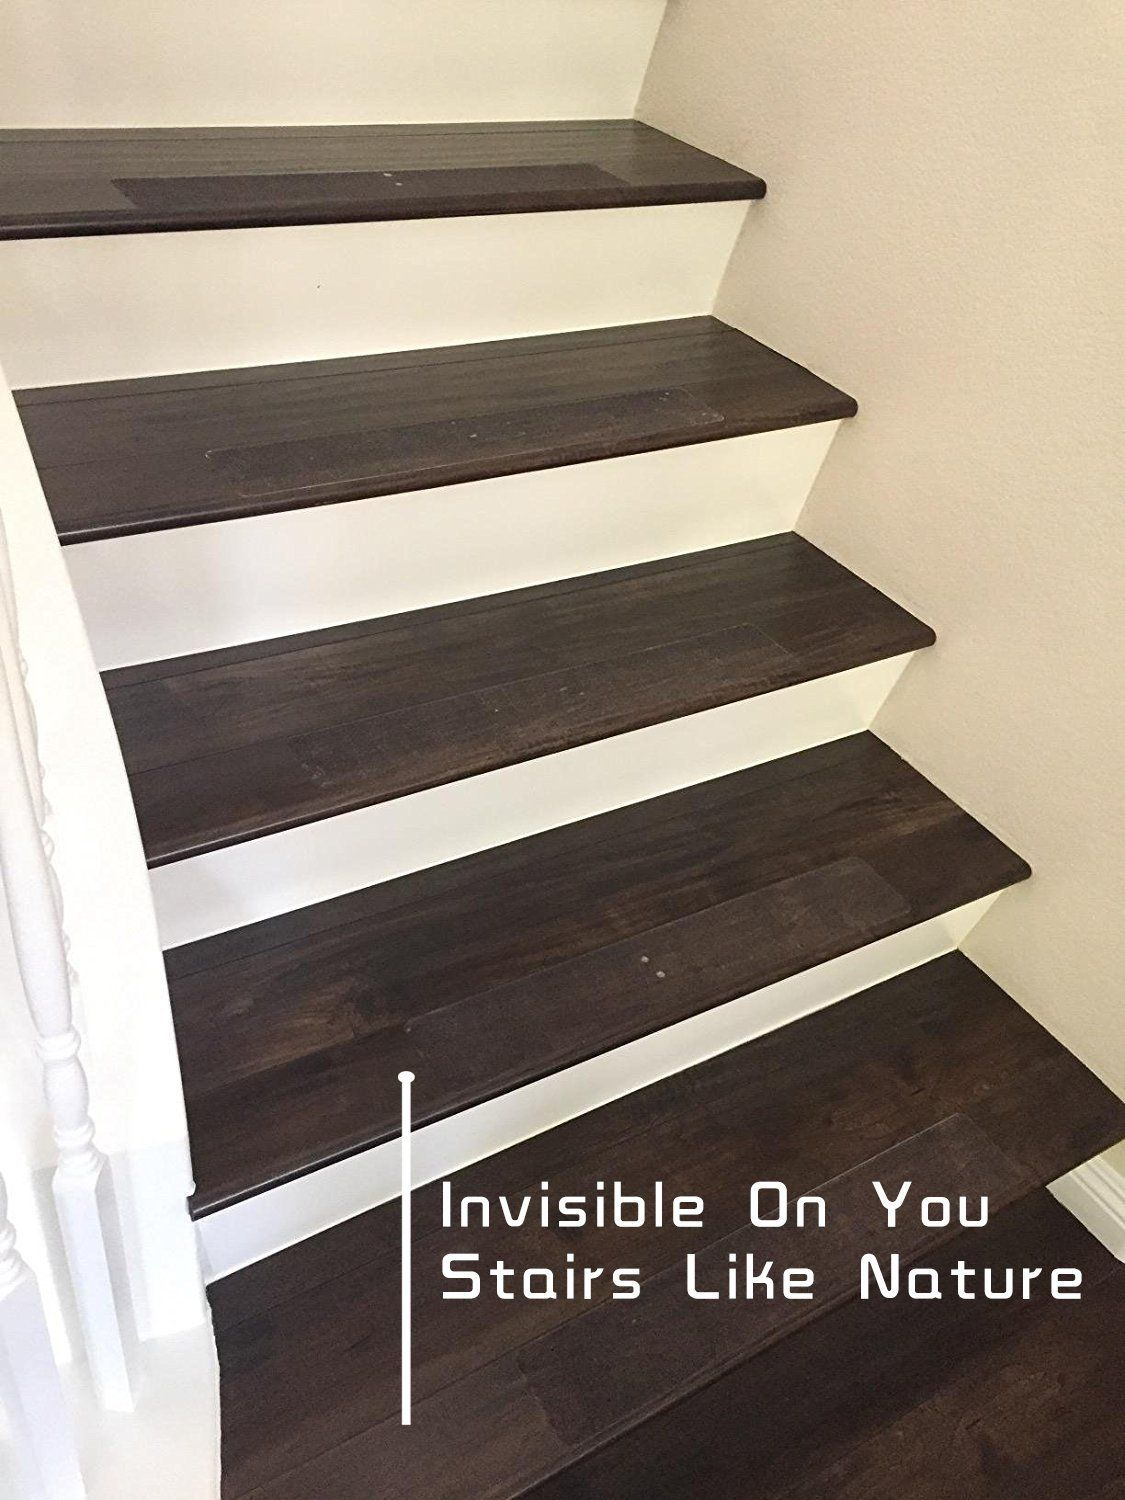 14 Pack 6 X 24 Non Slip Clear Adhesive Stair Treads Translucent